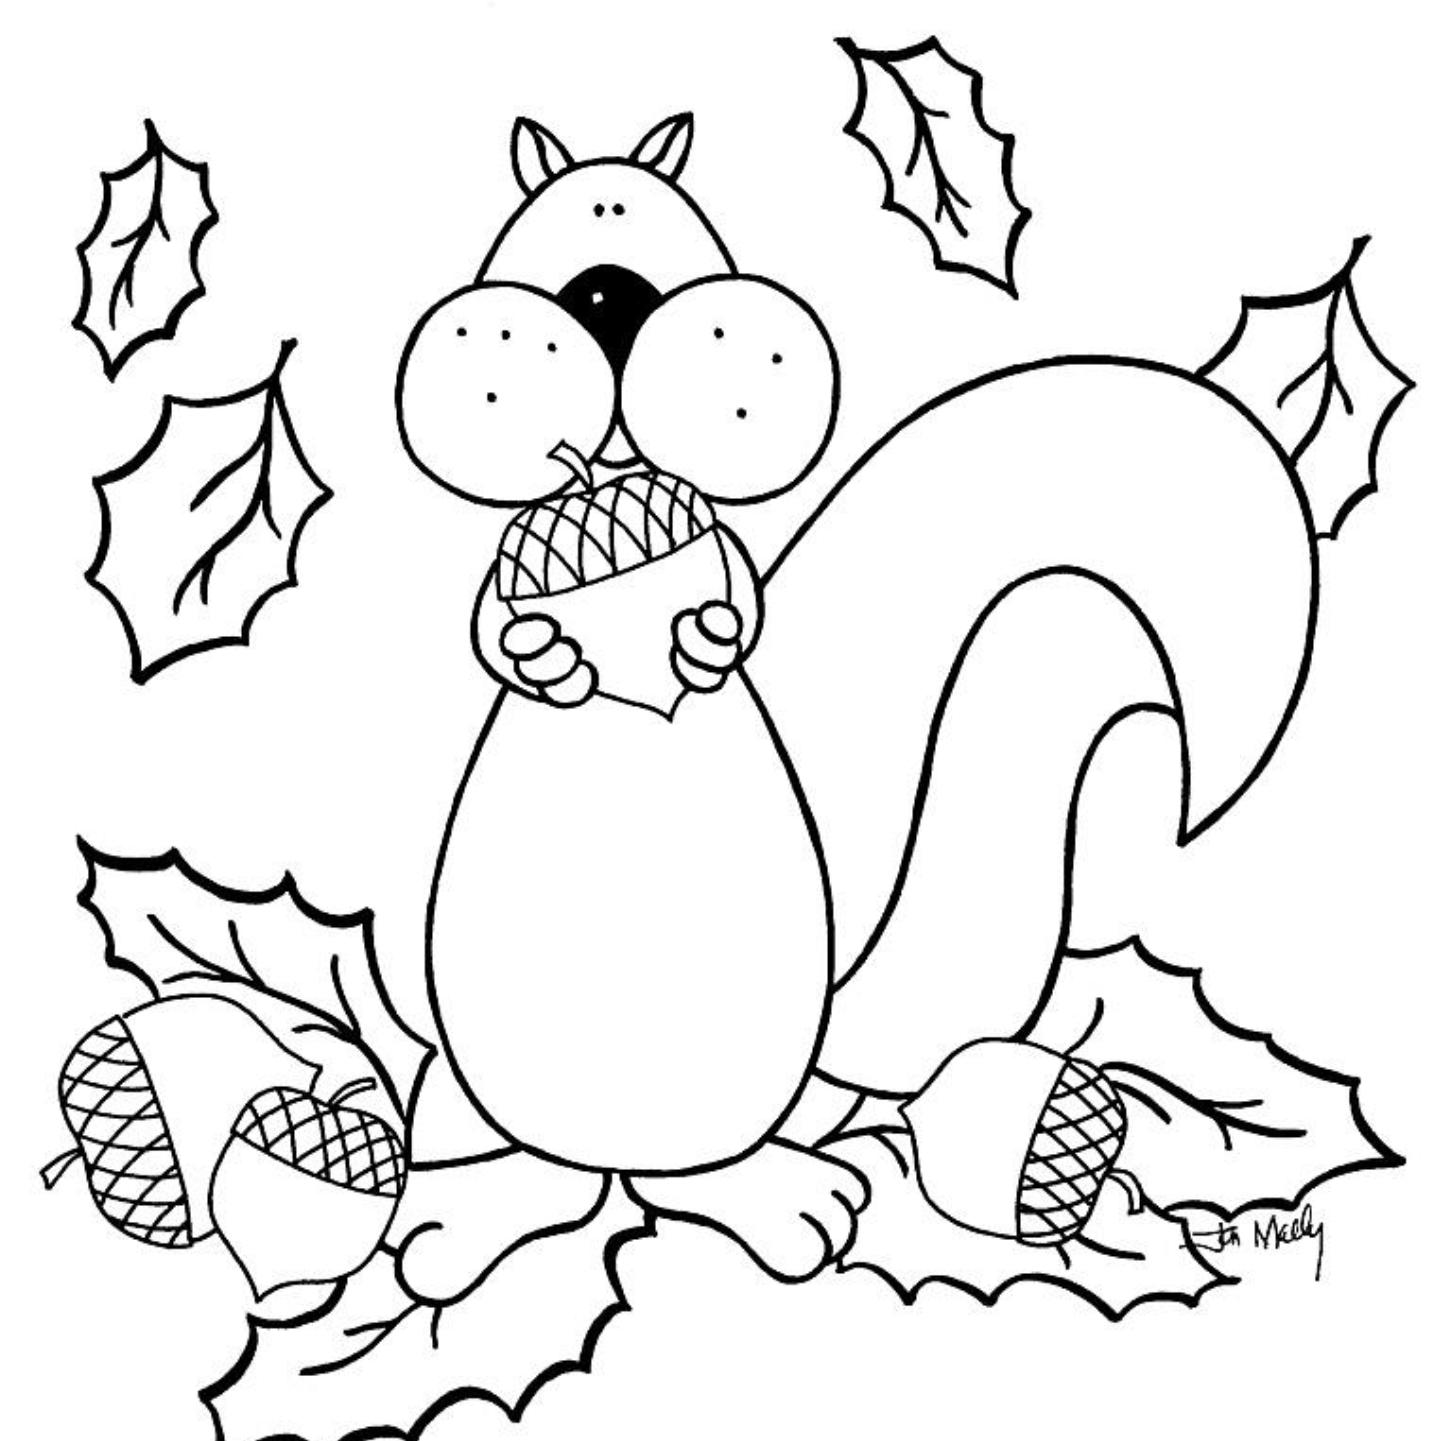 coloring pages fall themed - photo#24